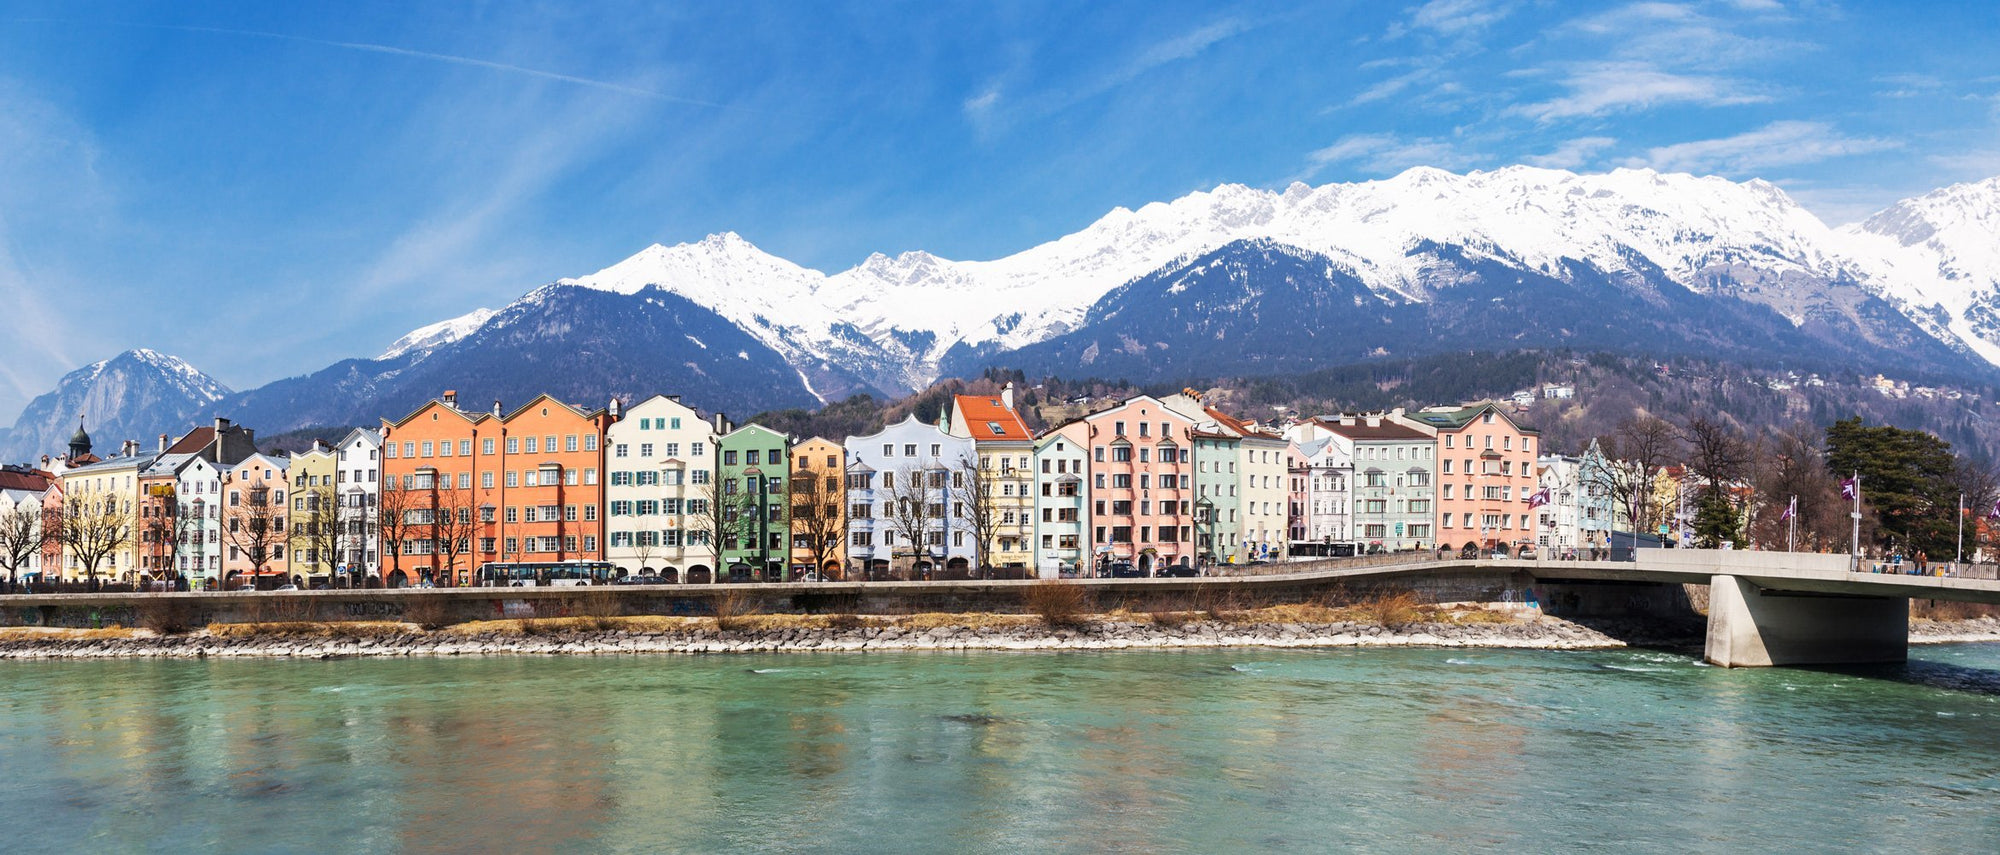 Field Guide: Innsbruck | WildBounds